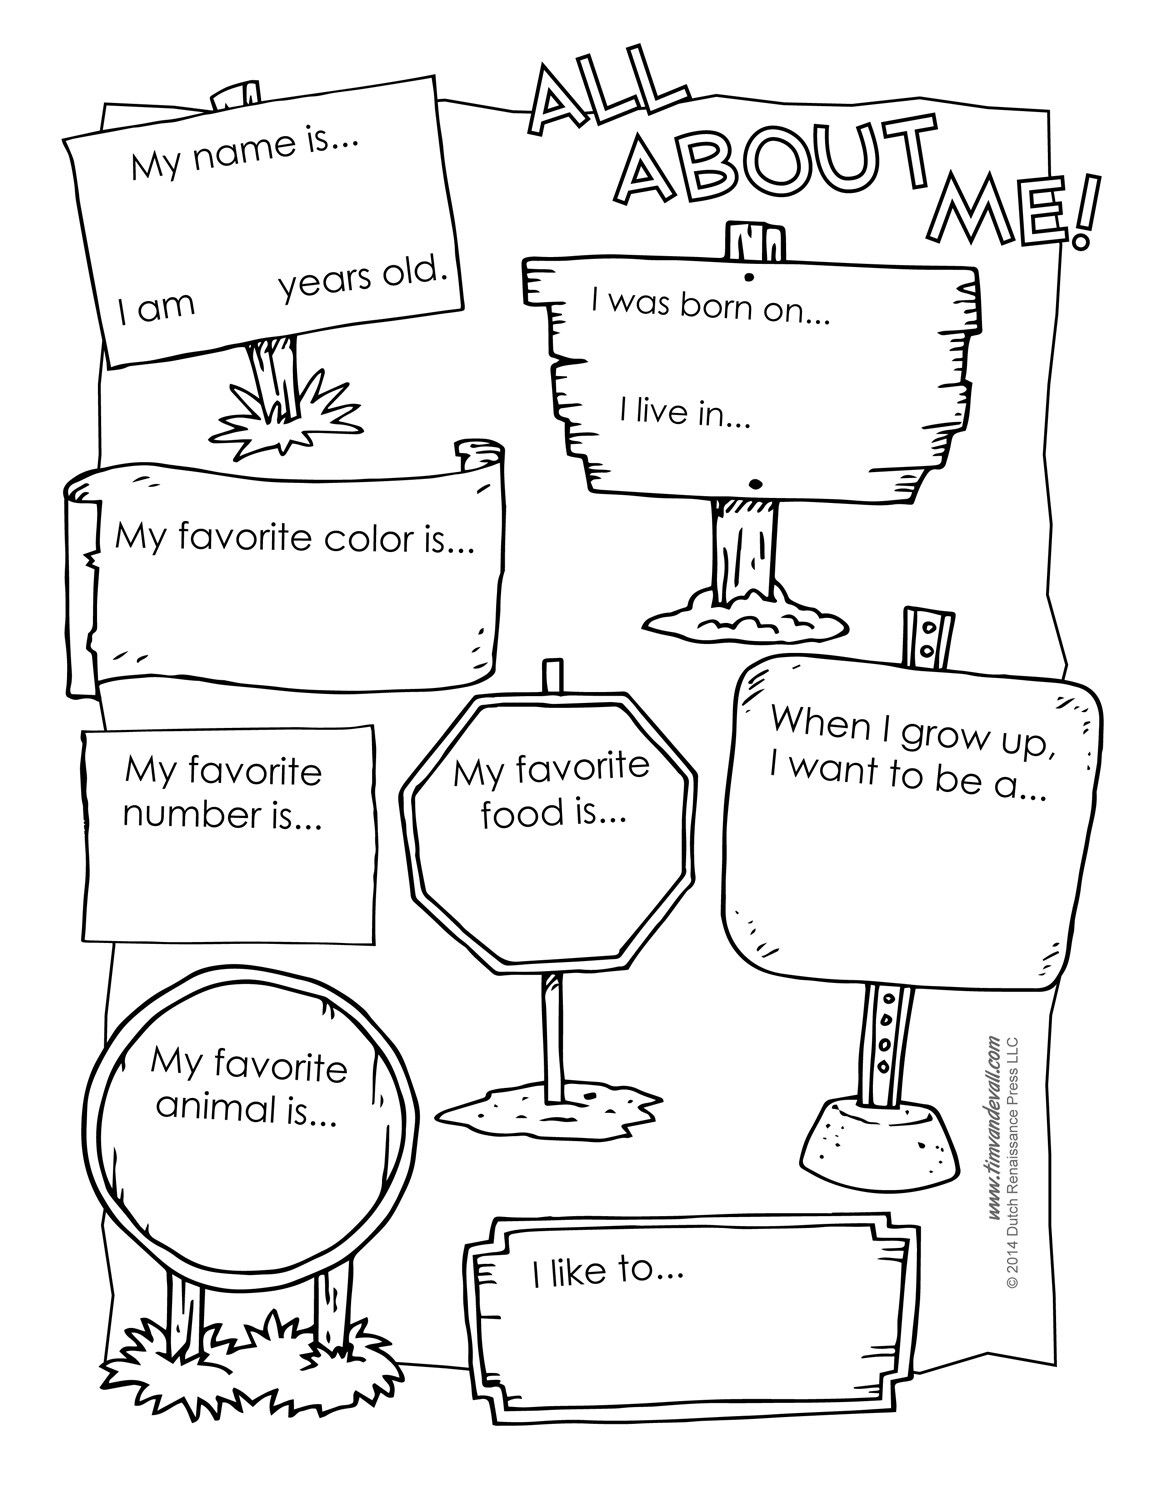 Pin By Rachel Travis On Diy Activities For My Class All